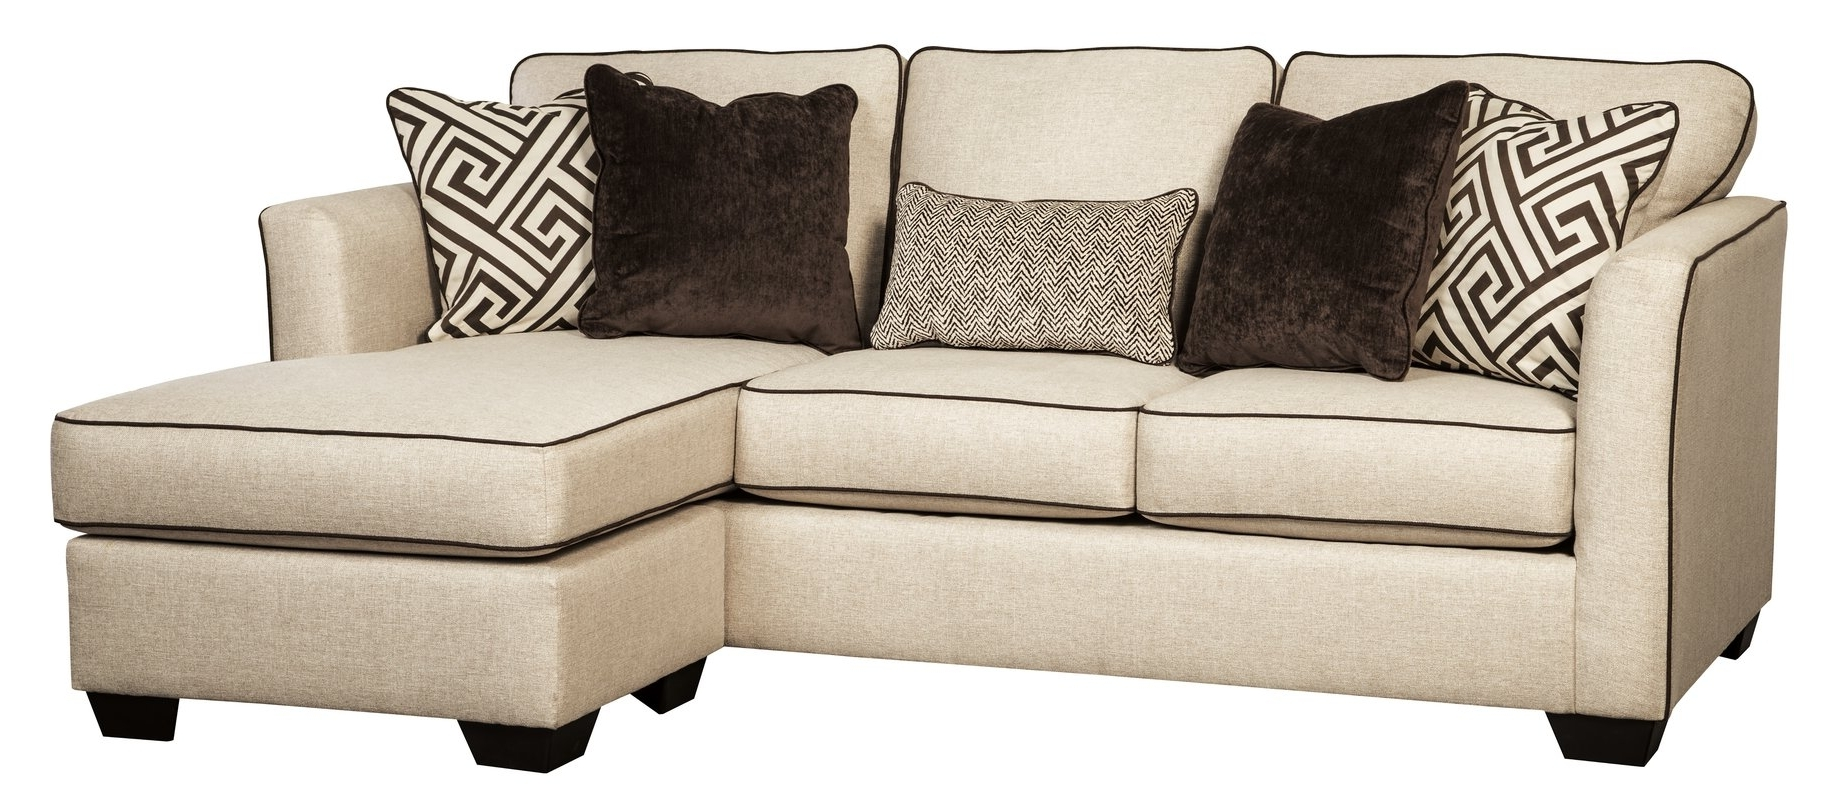 Chaise Settees Regarding Well Known Benchcraft Carlinworth Sofa Chaise & Reviews (View 7 of 15)